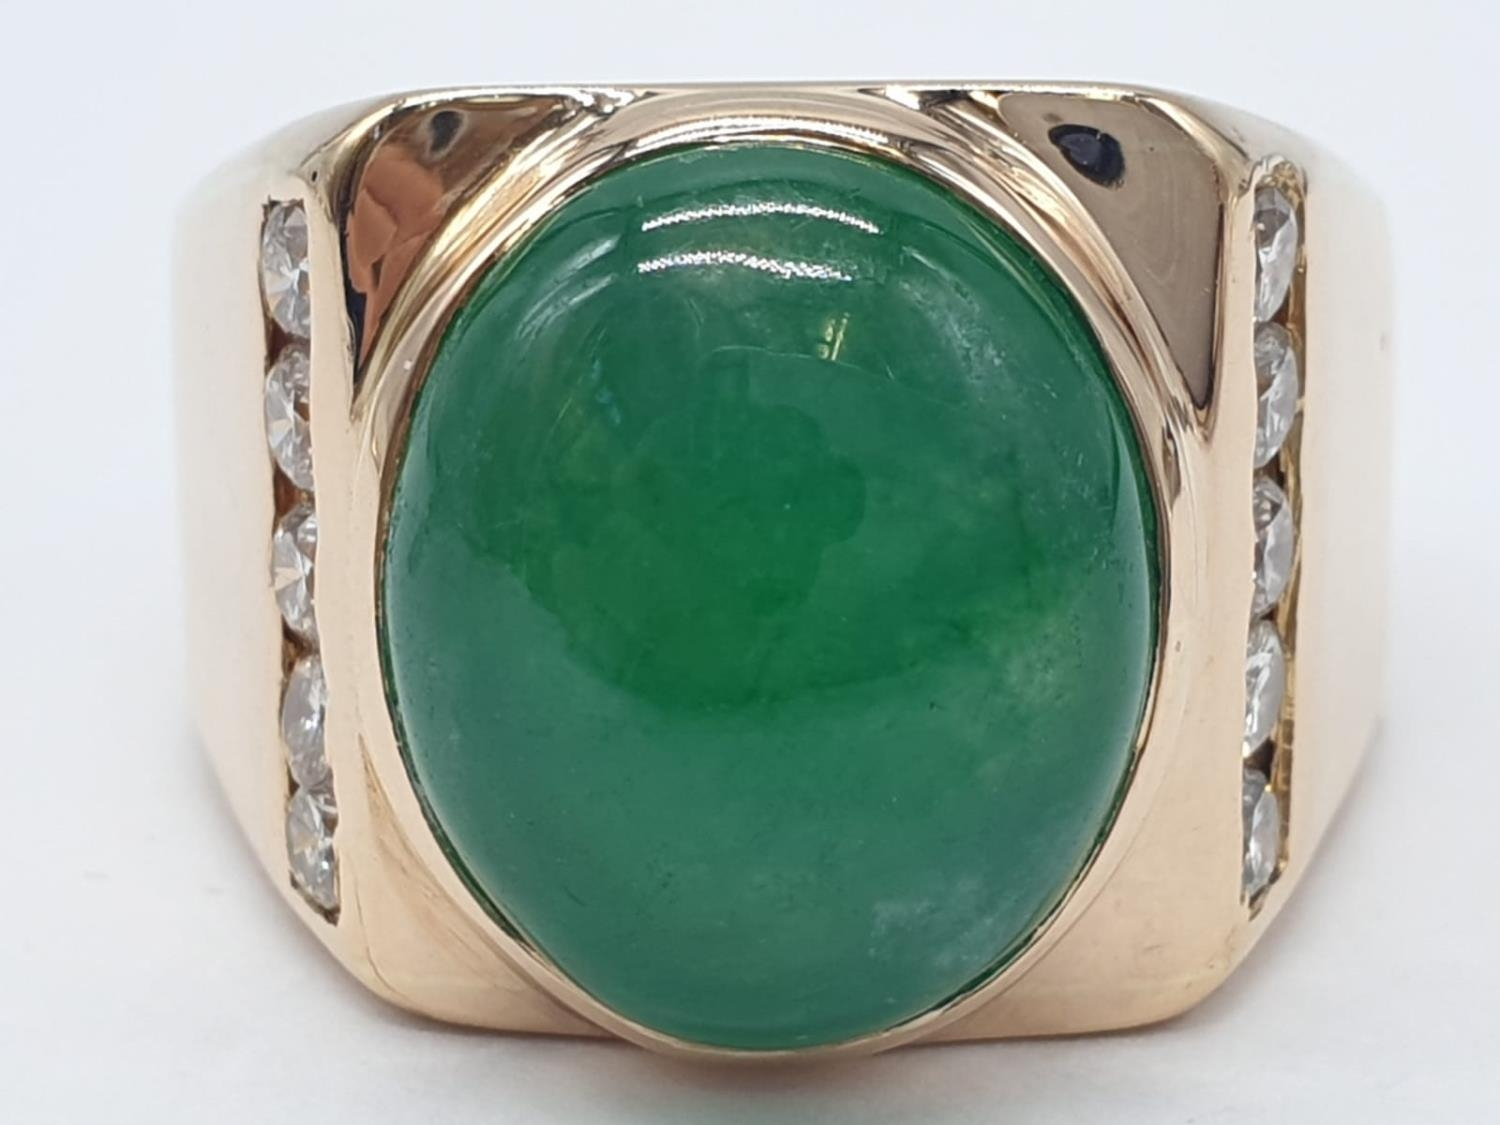 18ct Gold ring with natural jade stone and diamond shoulders. 16.2g total weight and size R. - Image 2 of 8